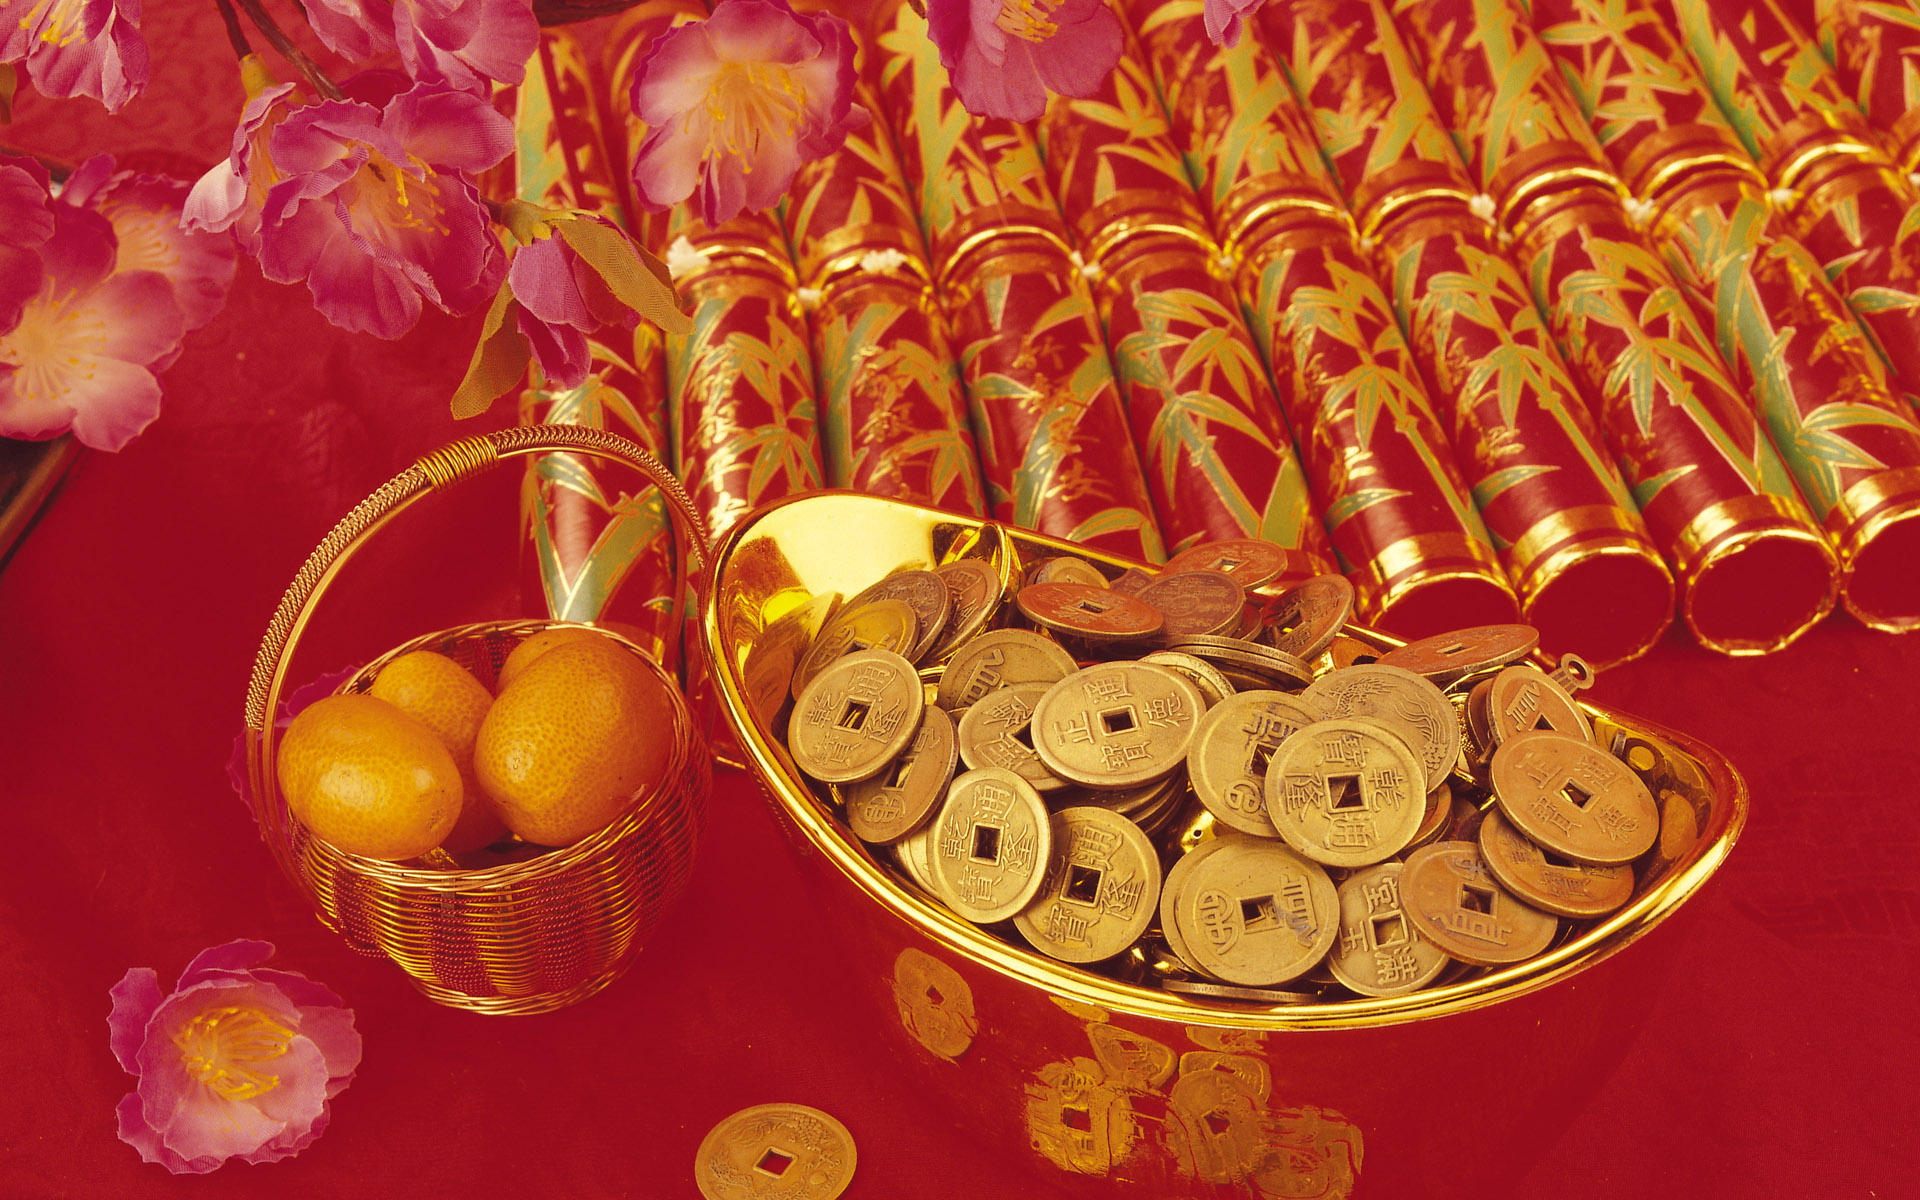 chinese new year 2014 desktop backgrounds - wallpaper, high